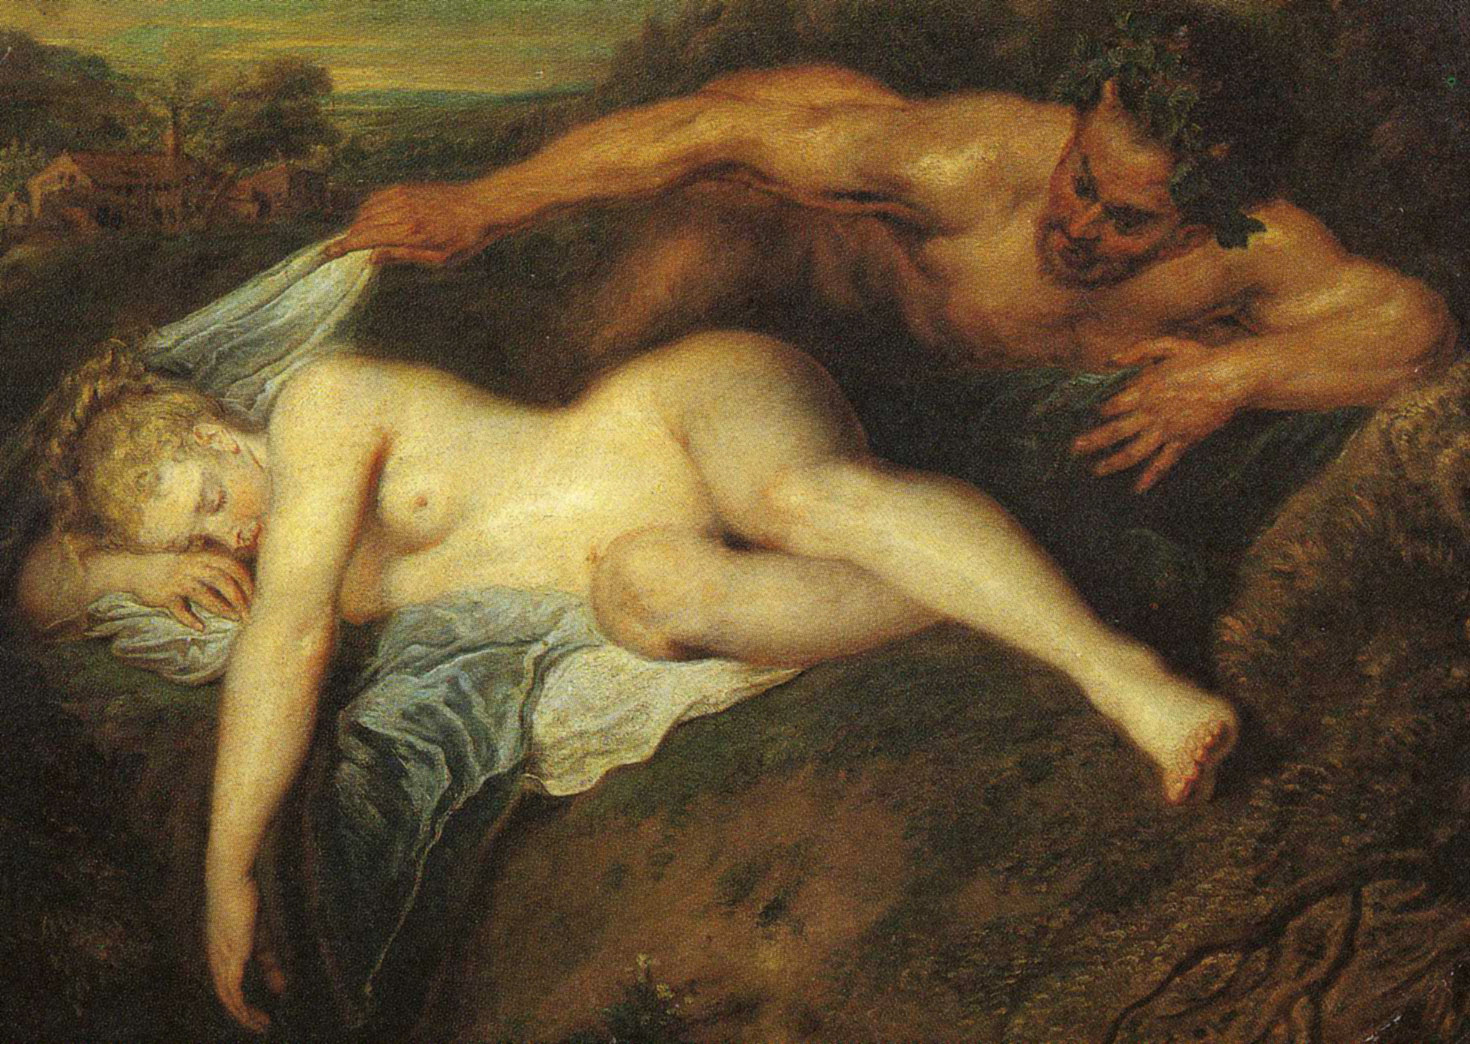 Female satyr nackt exposed scene